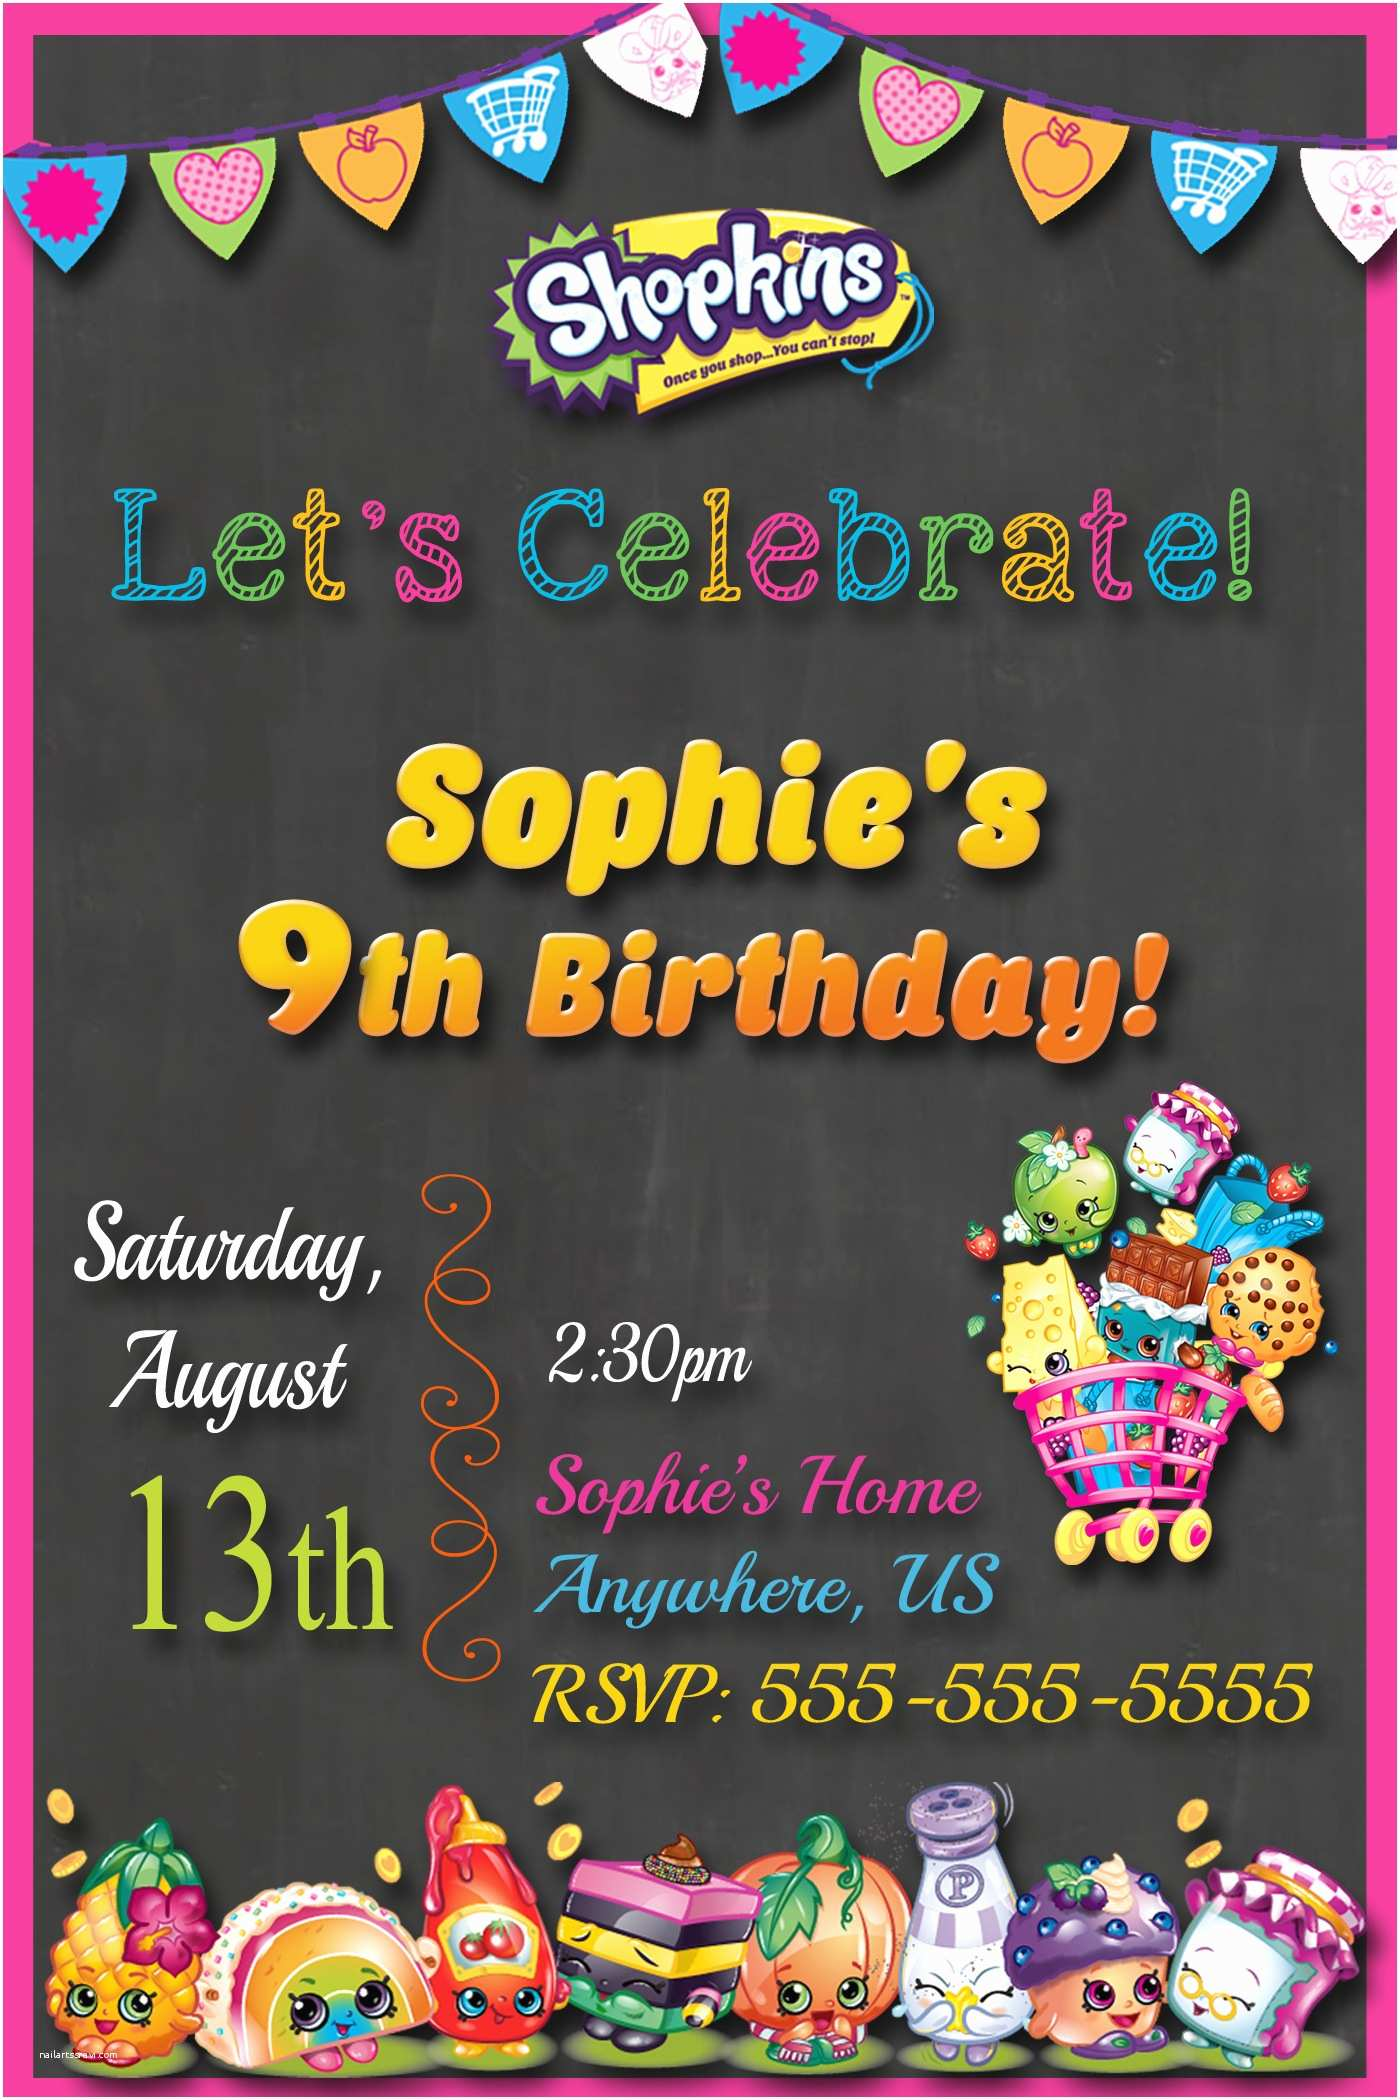 Party City Birthday Invitations Party City Invitations for Birthdays Various Invitation